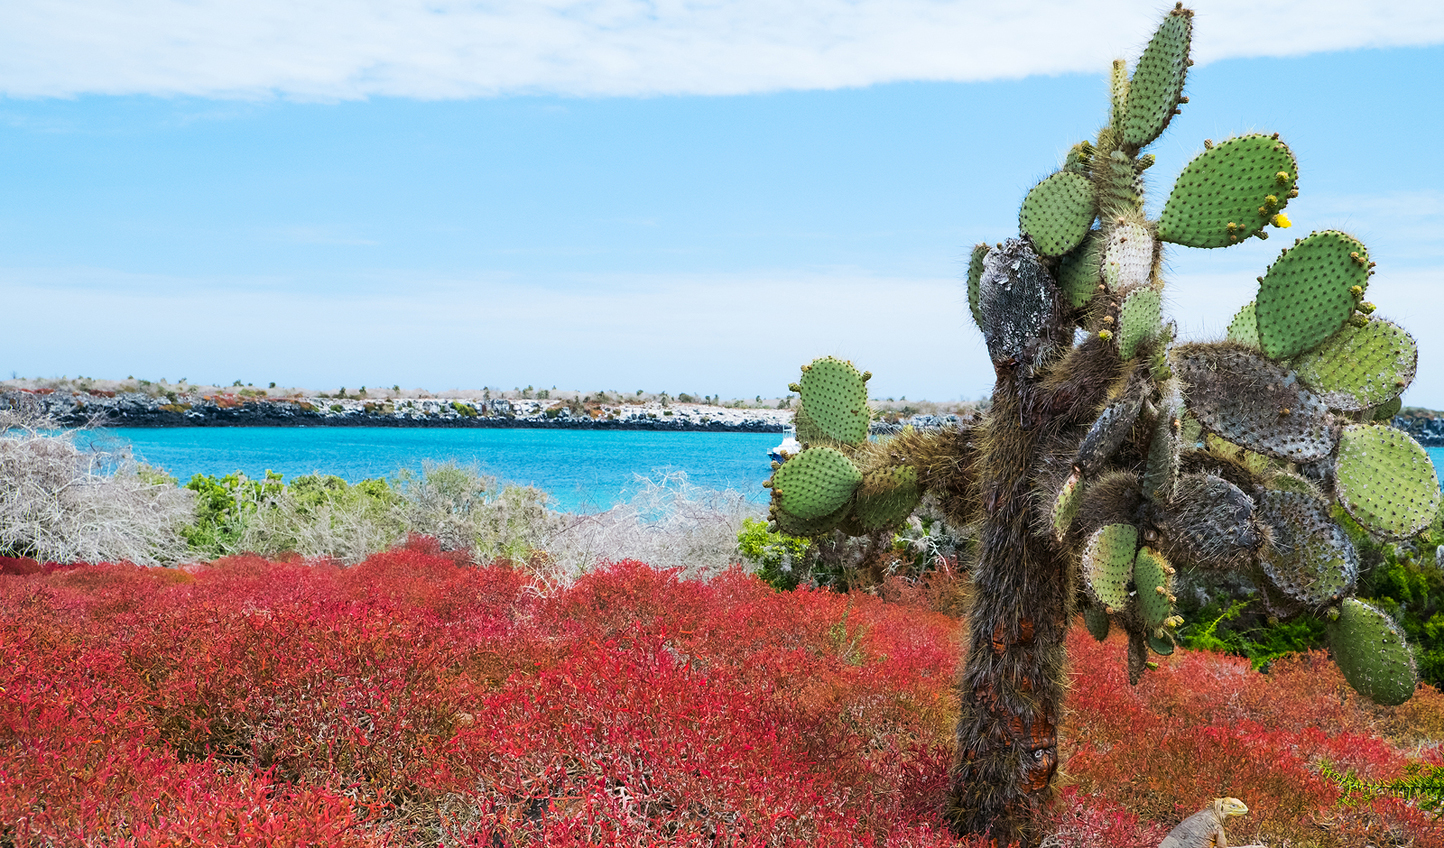 Marvel at stunning landscapes in the Galapagos